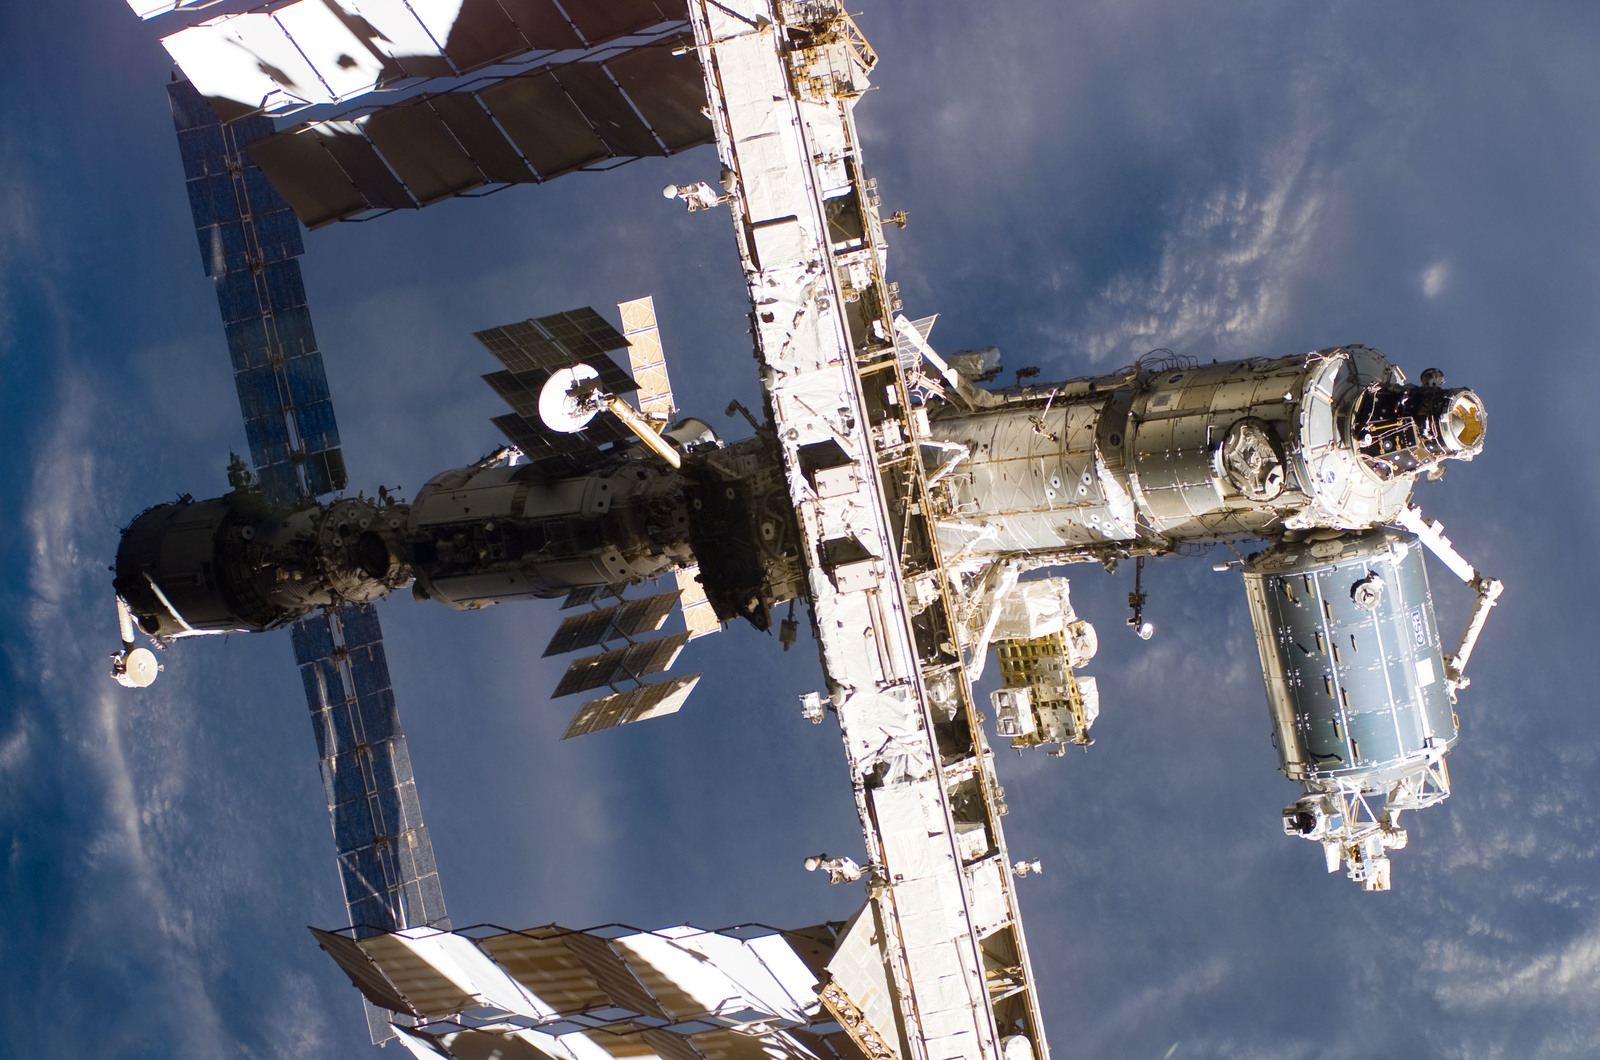 S122E009970 - STS-122 - Flyaround view of ISS after STS-122 Undocking